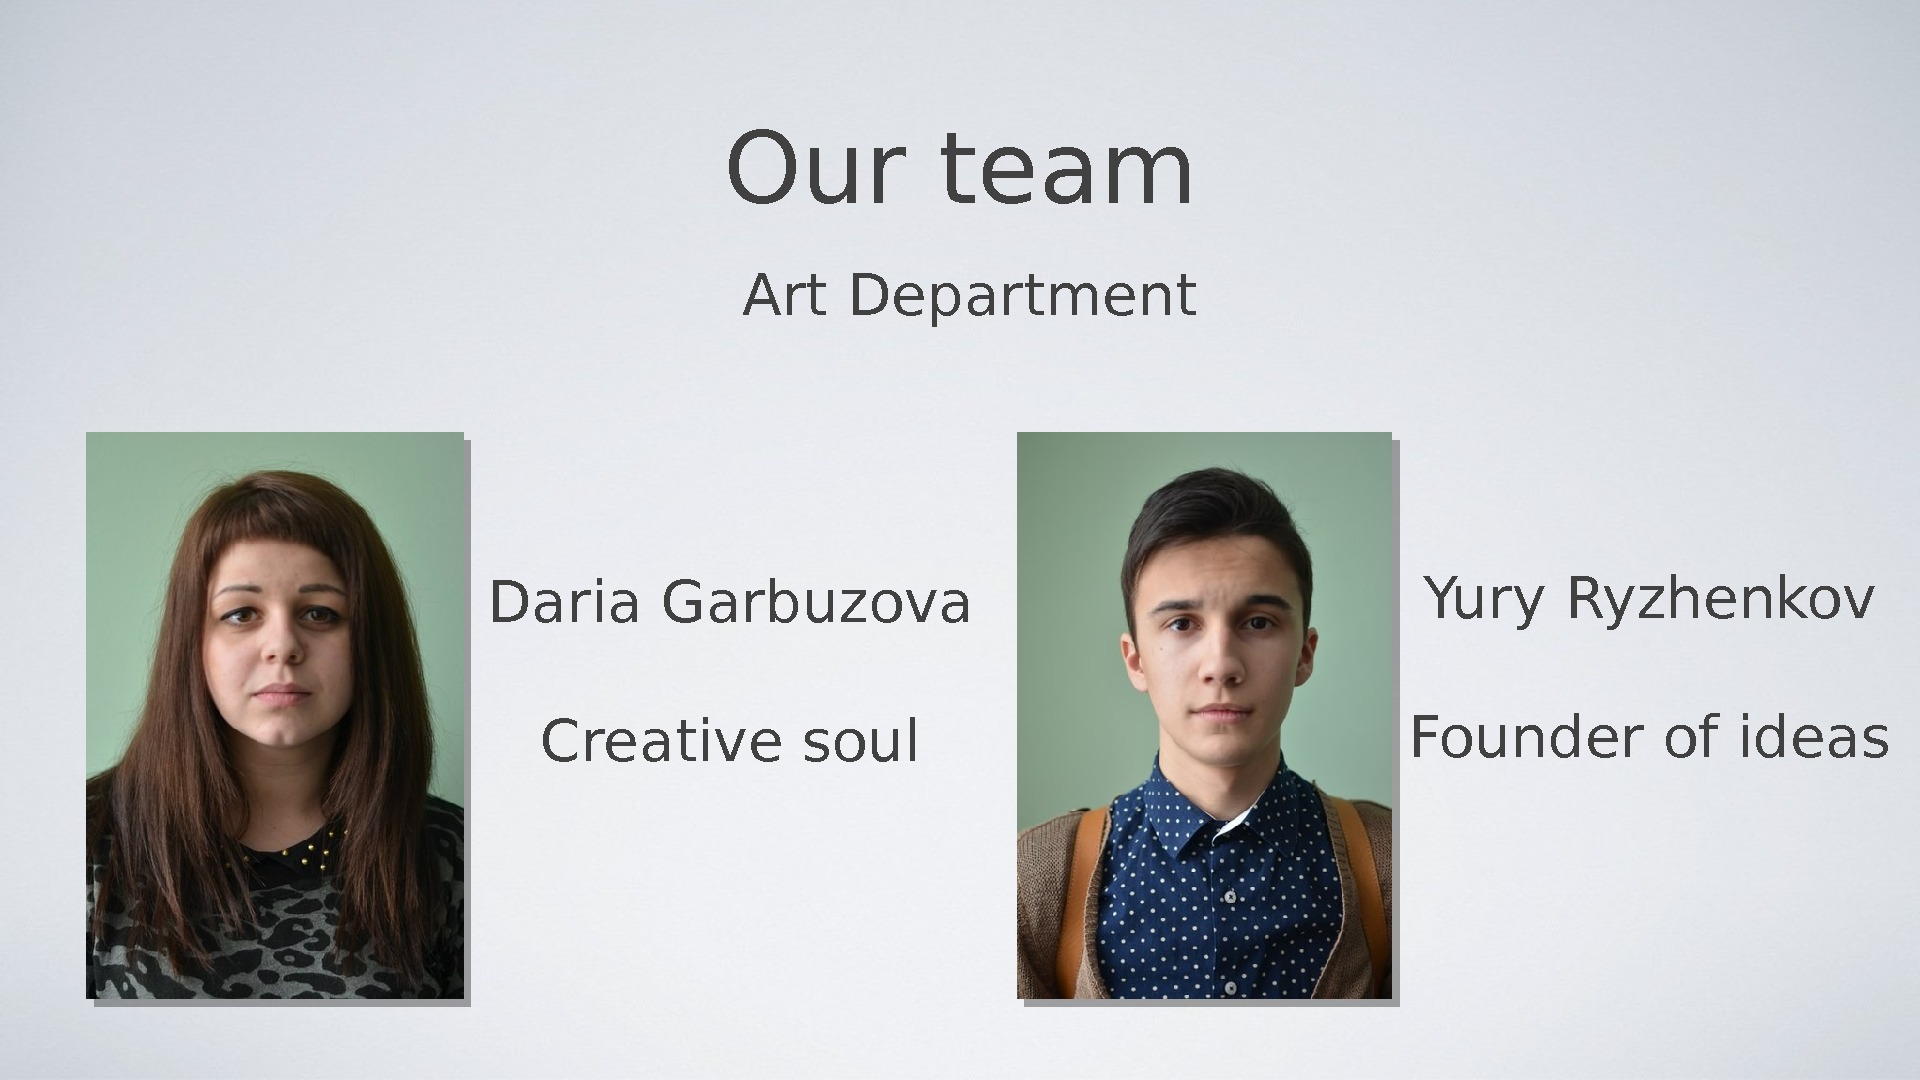 Our team Art Department Daria Garbuzova Creative soul Yury Ryzhenkov Founder of ideas